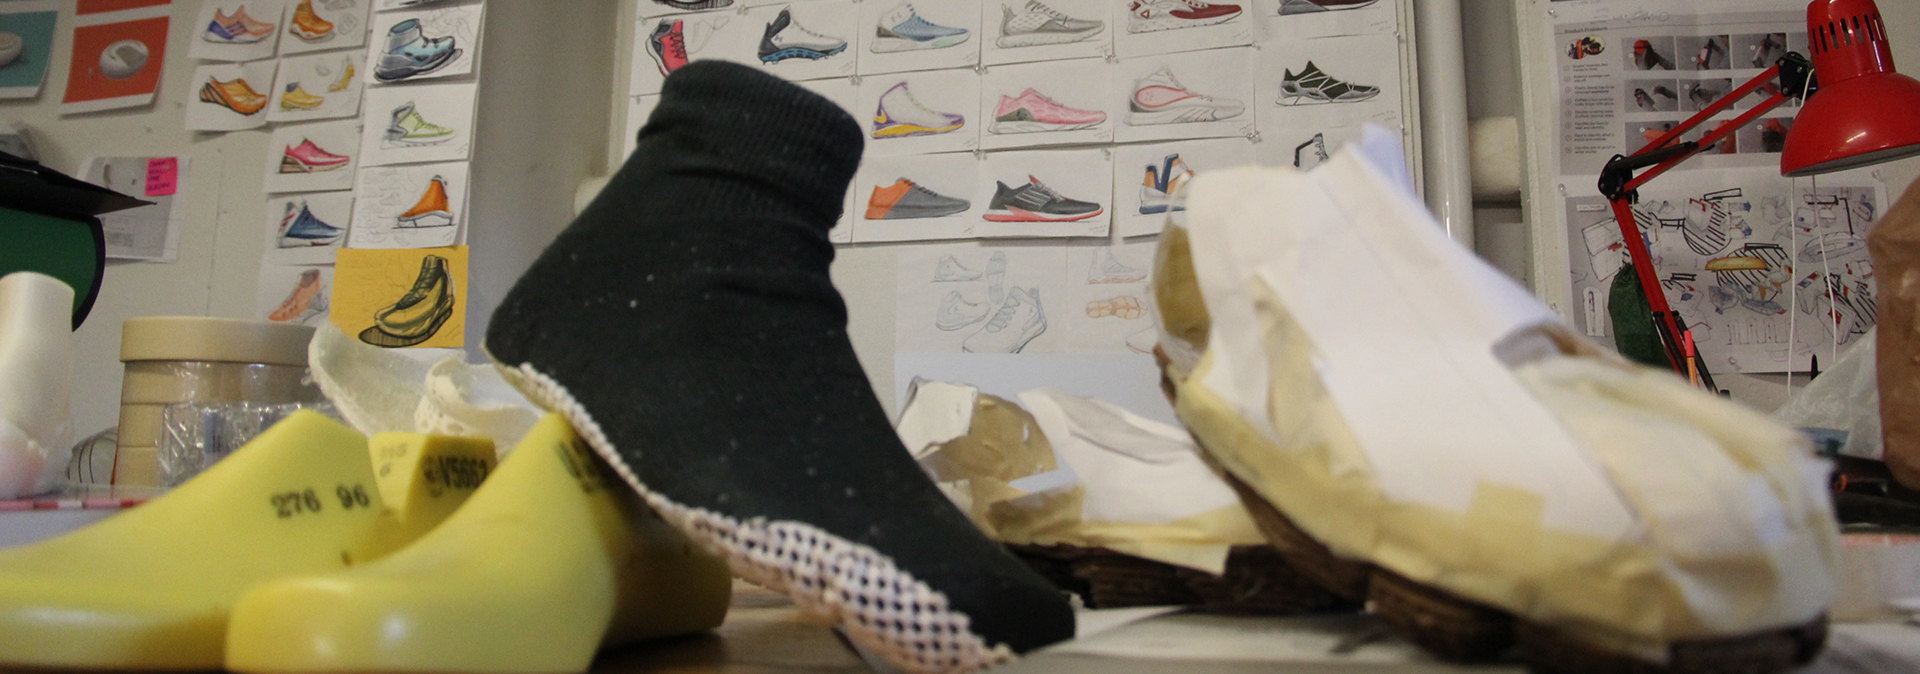 sneakers from industrial design class